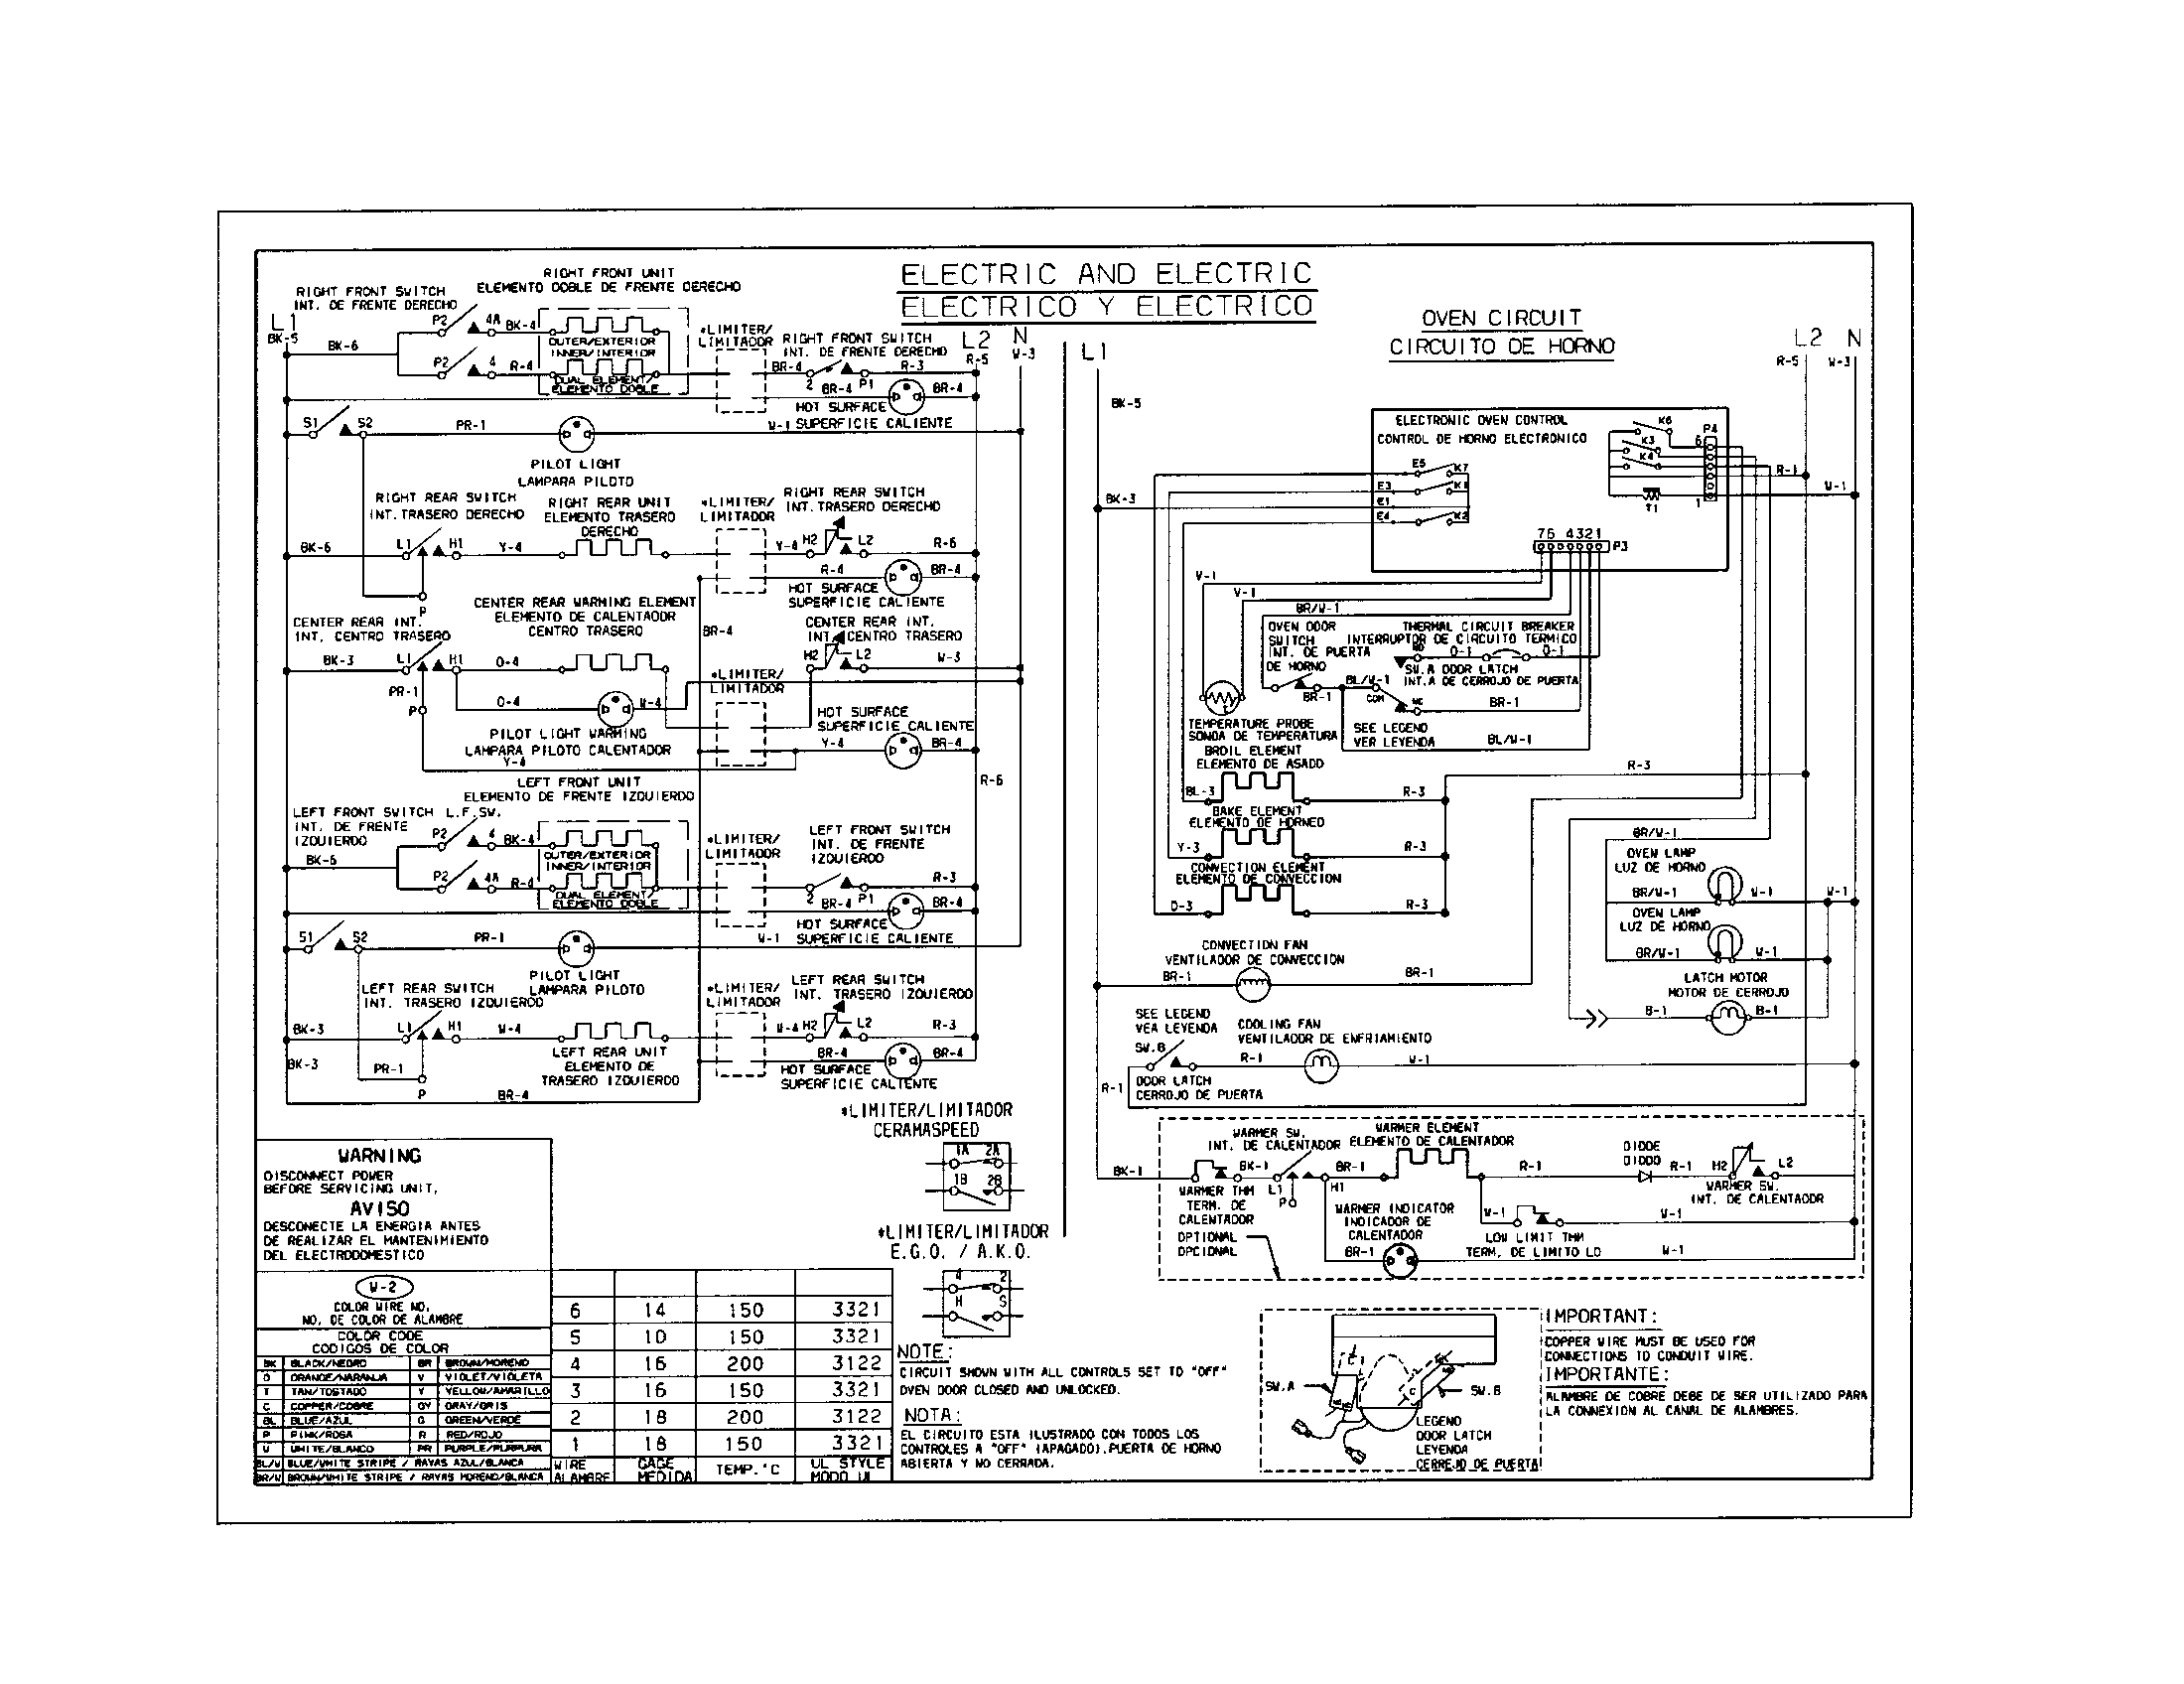 Kenmore Oven Wiring Diagram - Wiring Diagram Fascinating on kenmore oven parts schematic, kenmore dryer wiring schematic, kenmore refrigerator wiring schematic,